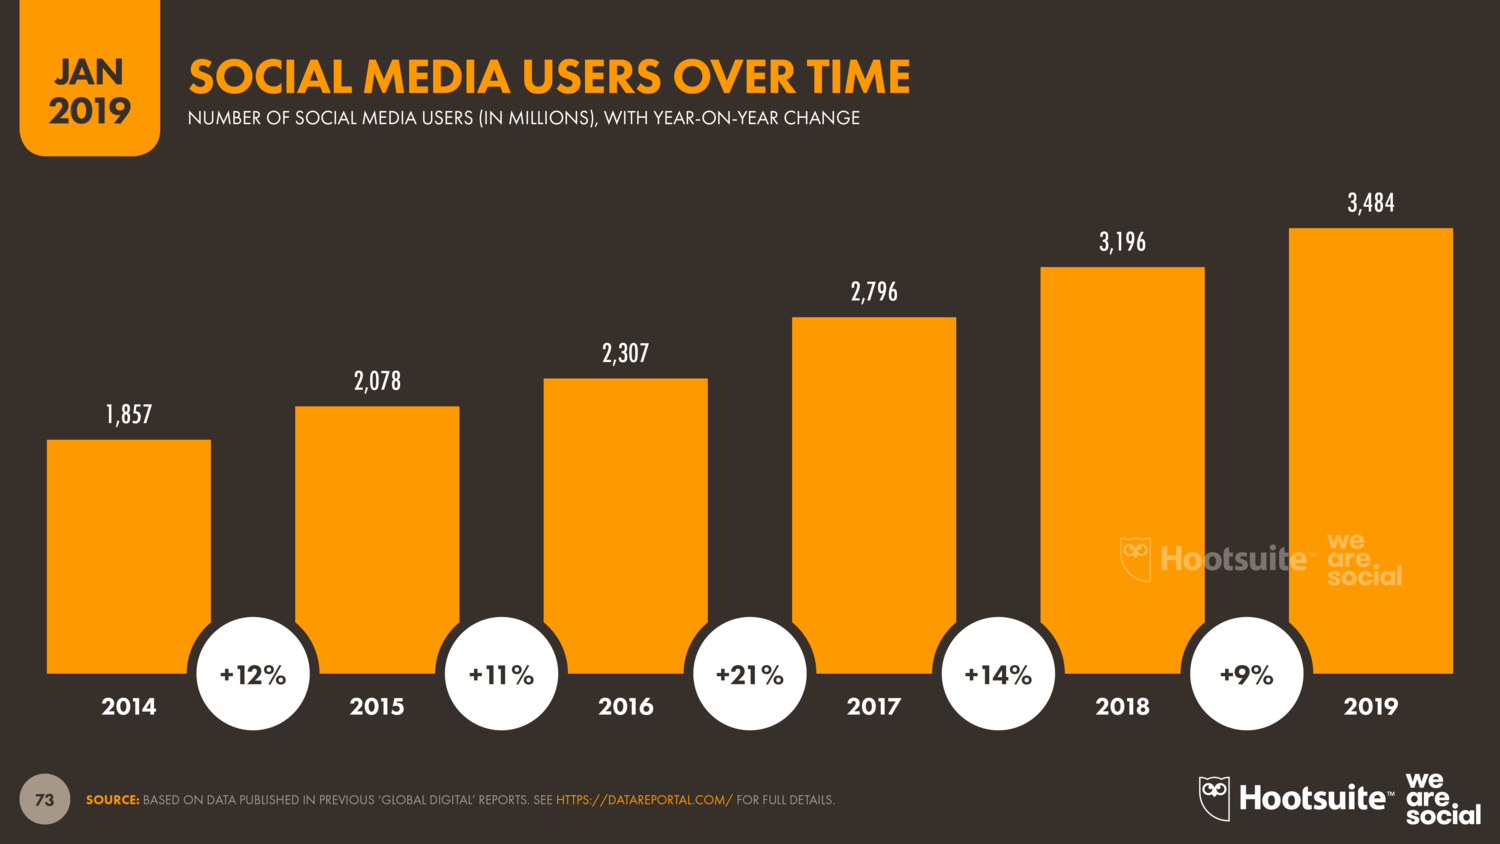 Growth in social media users 2014-2019